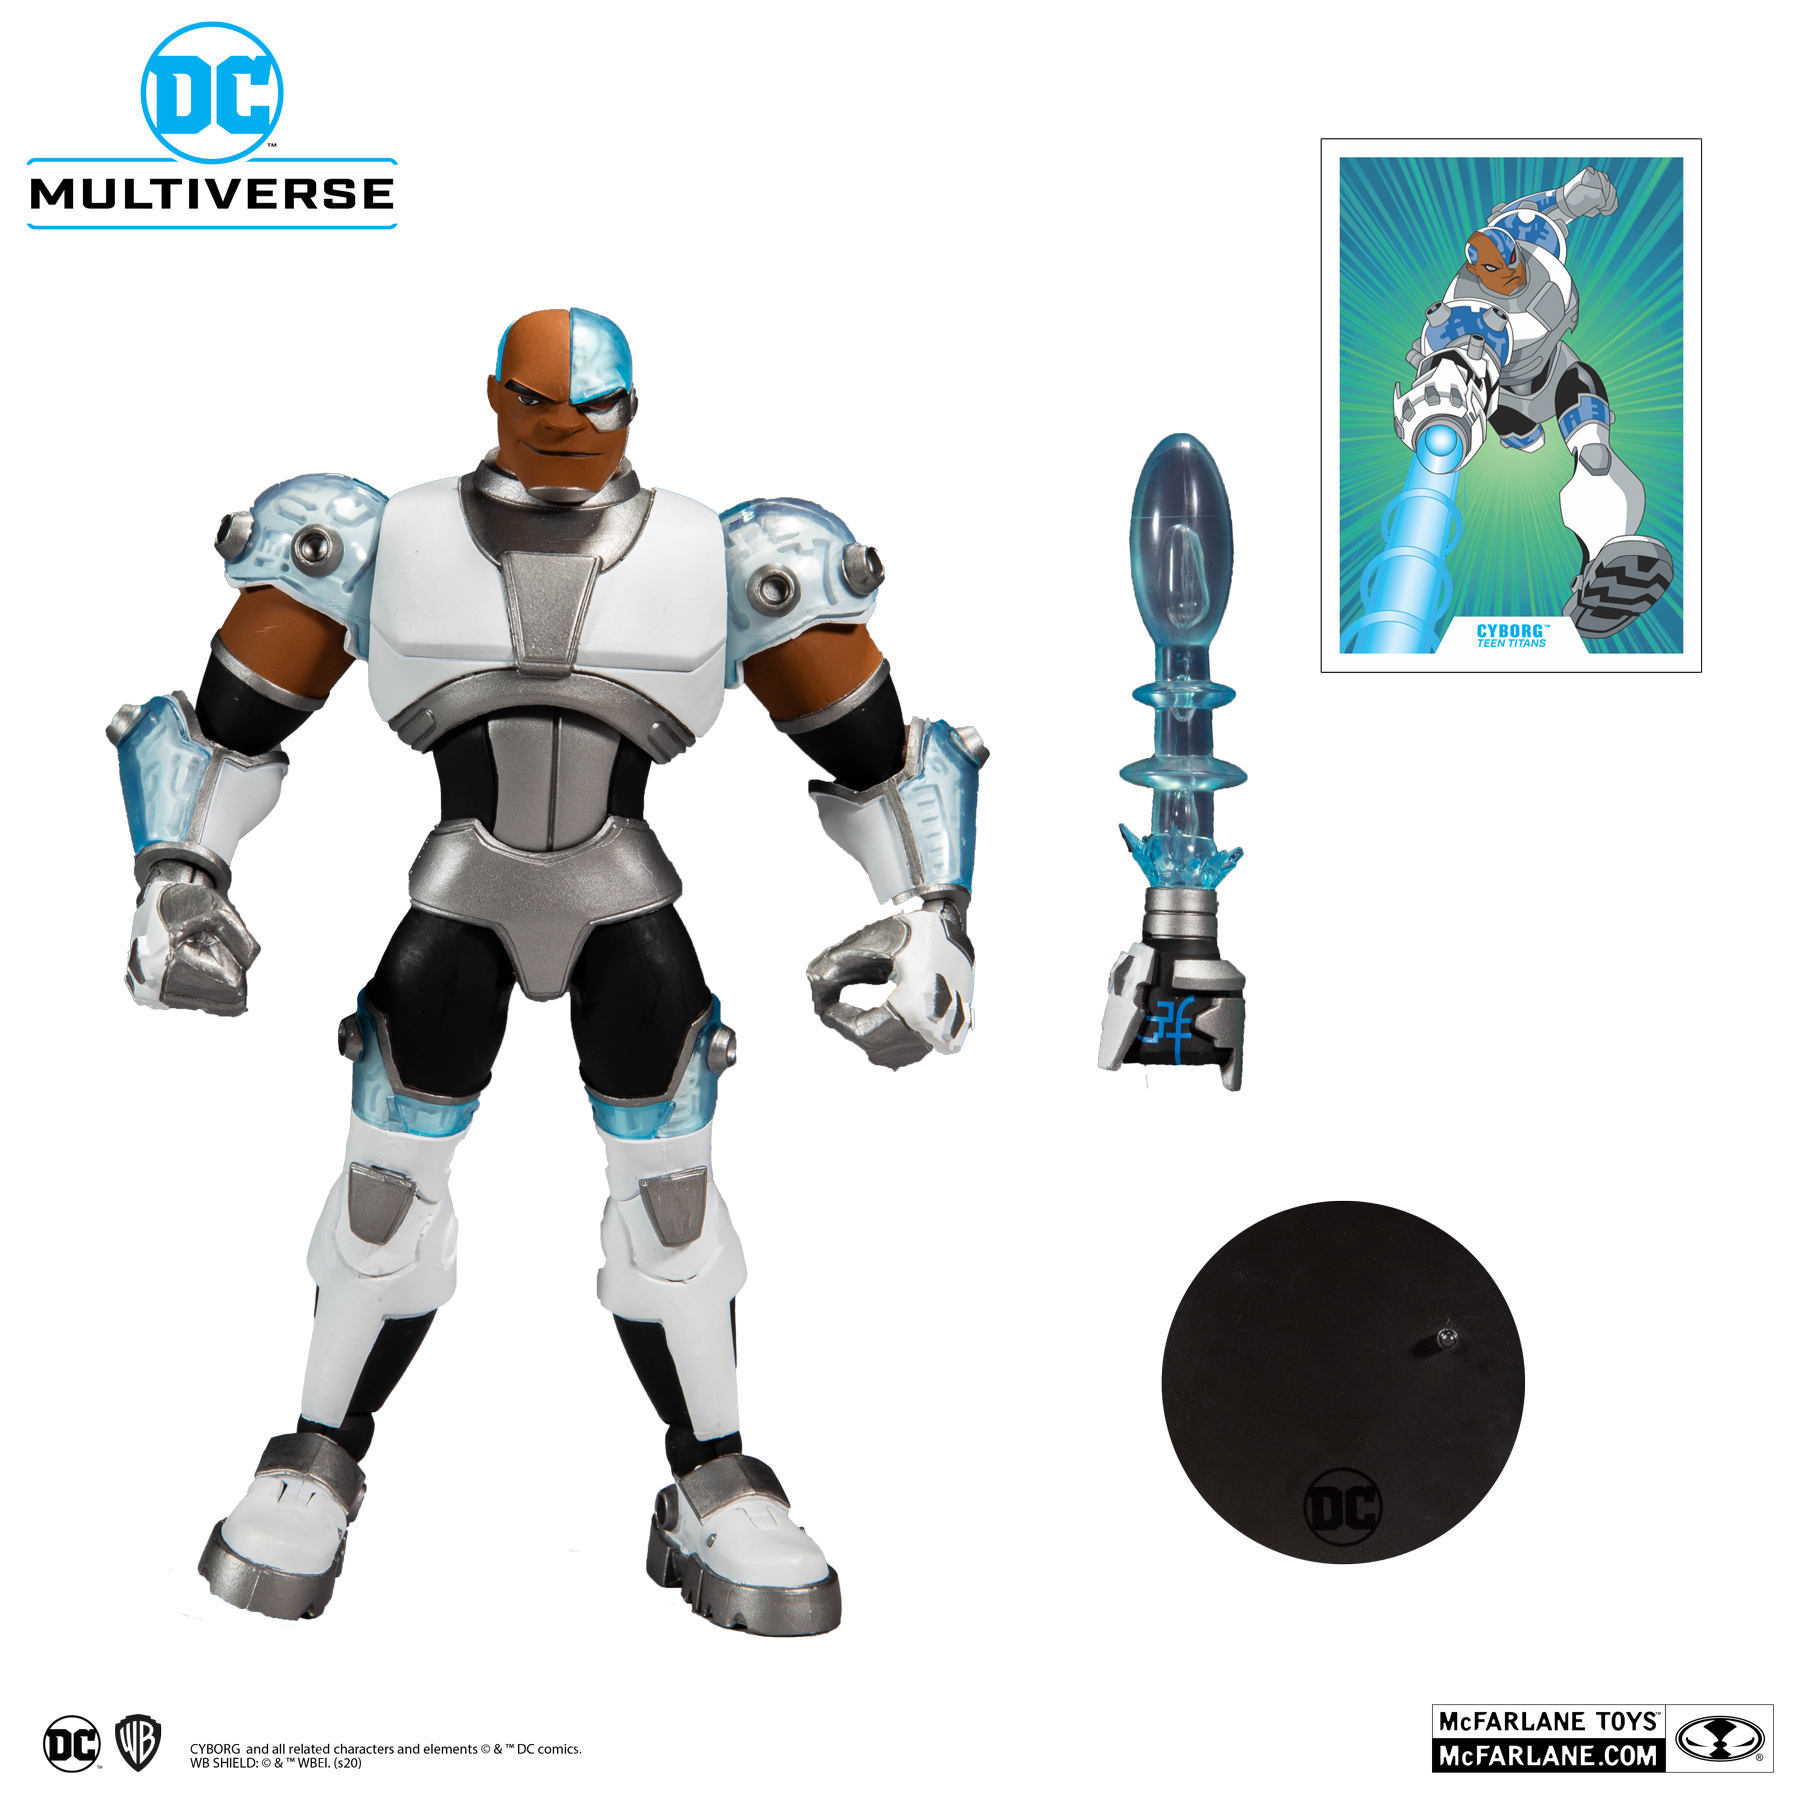 TEEN TITANS CYBORG - DC MULTIVERSE McFarlane Toys 7-Inch Action Figure